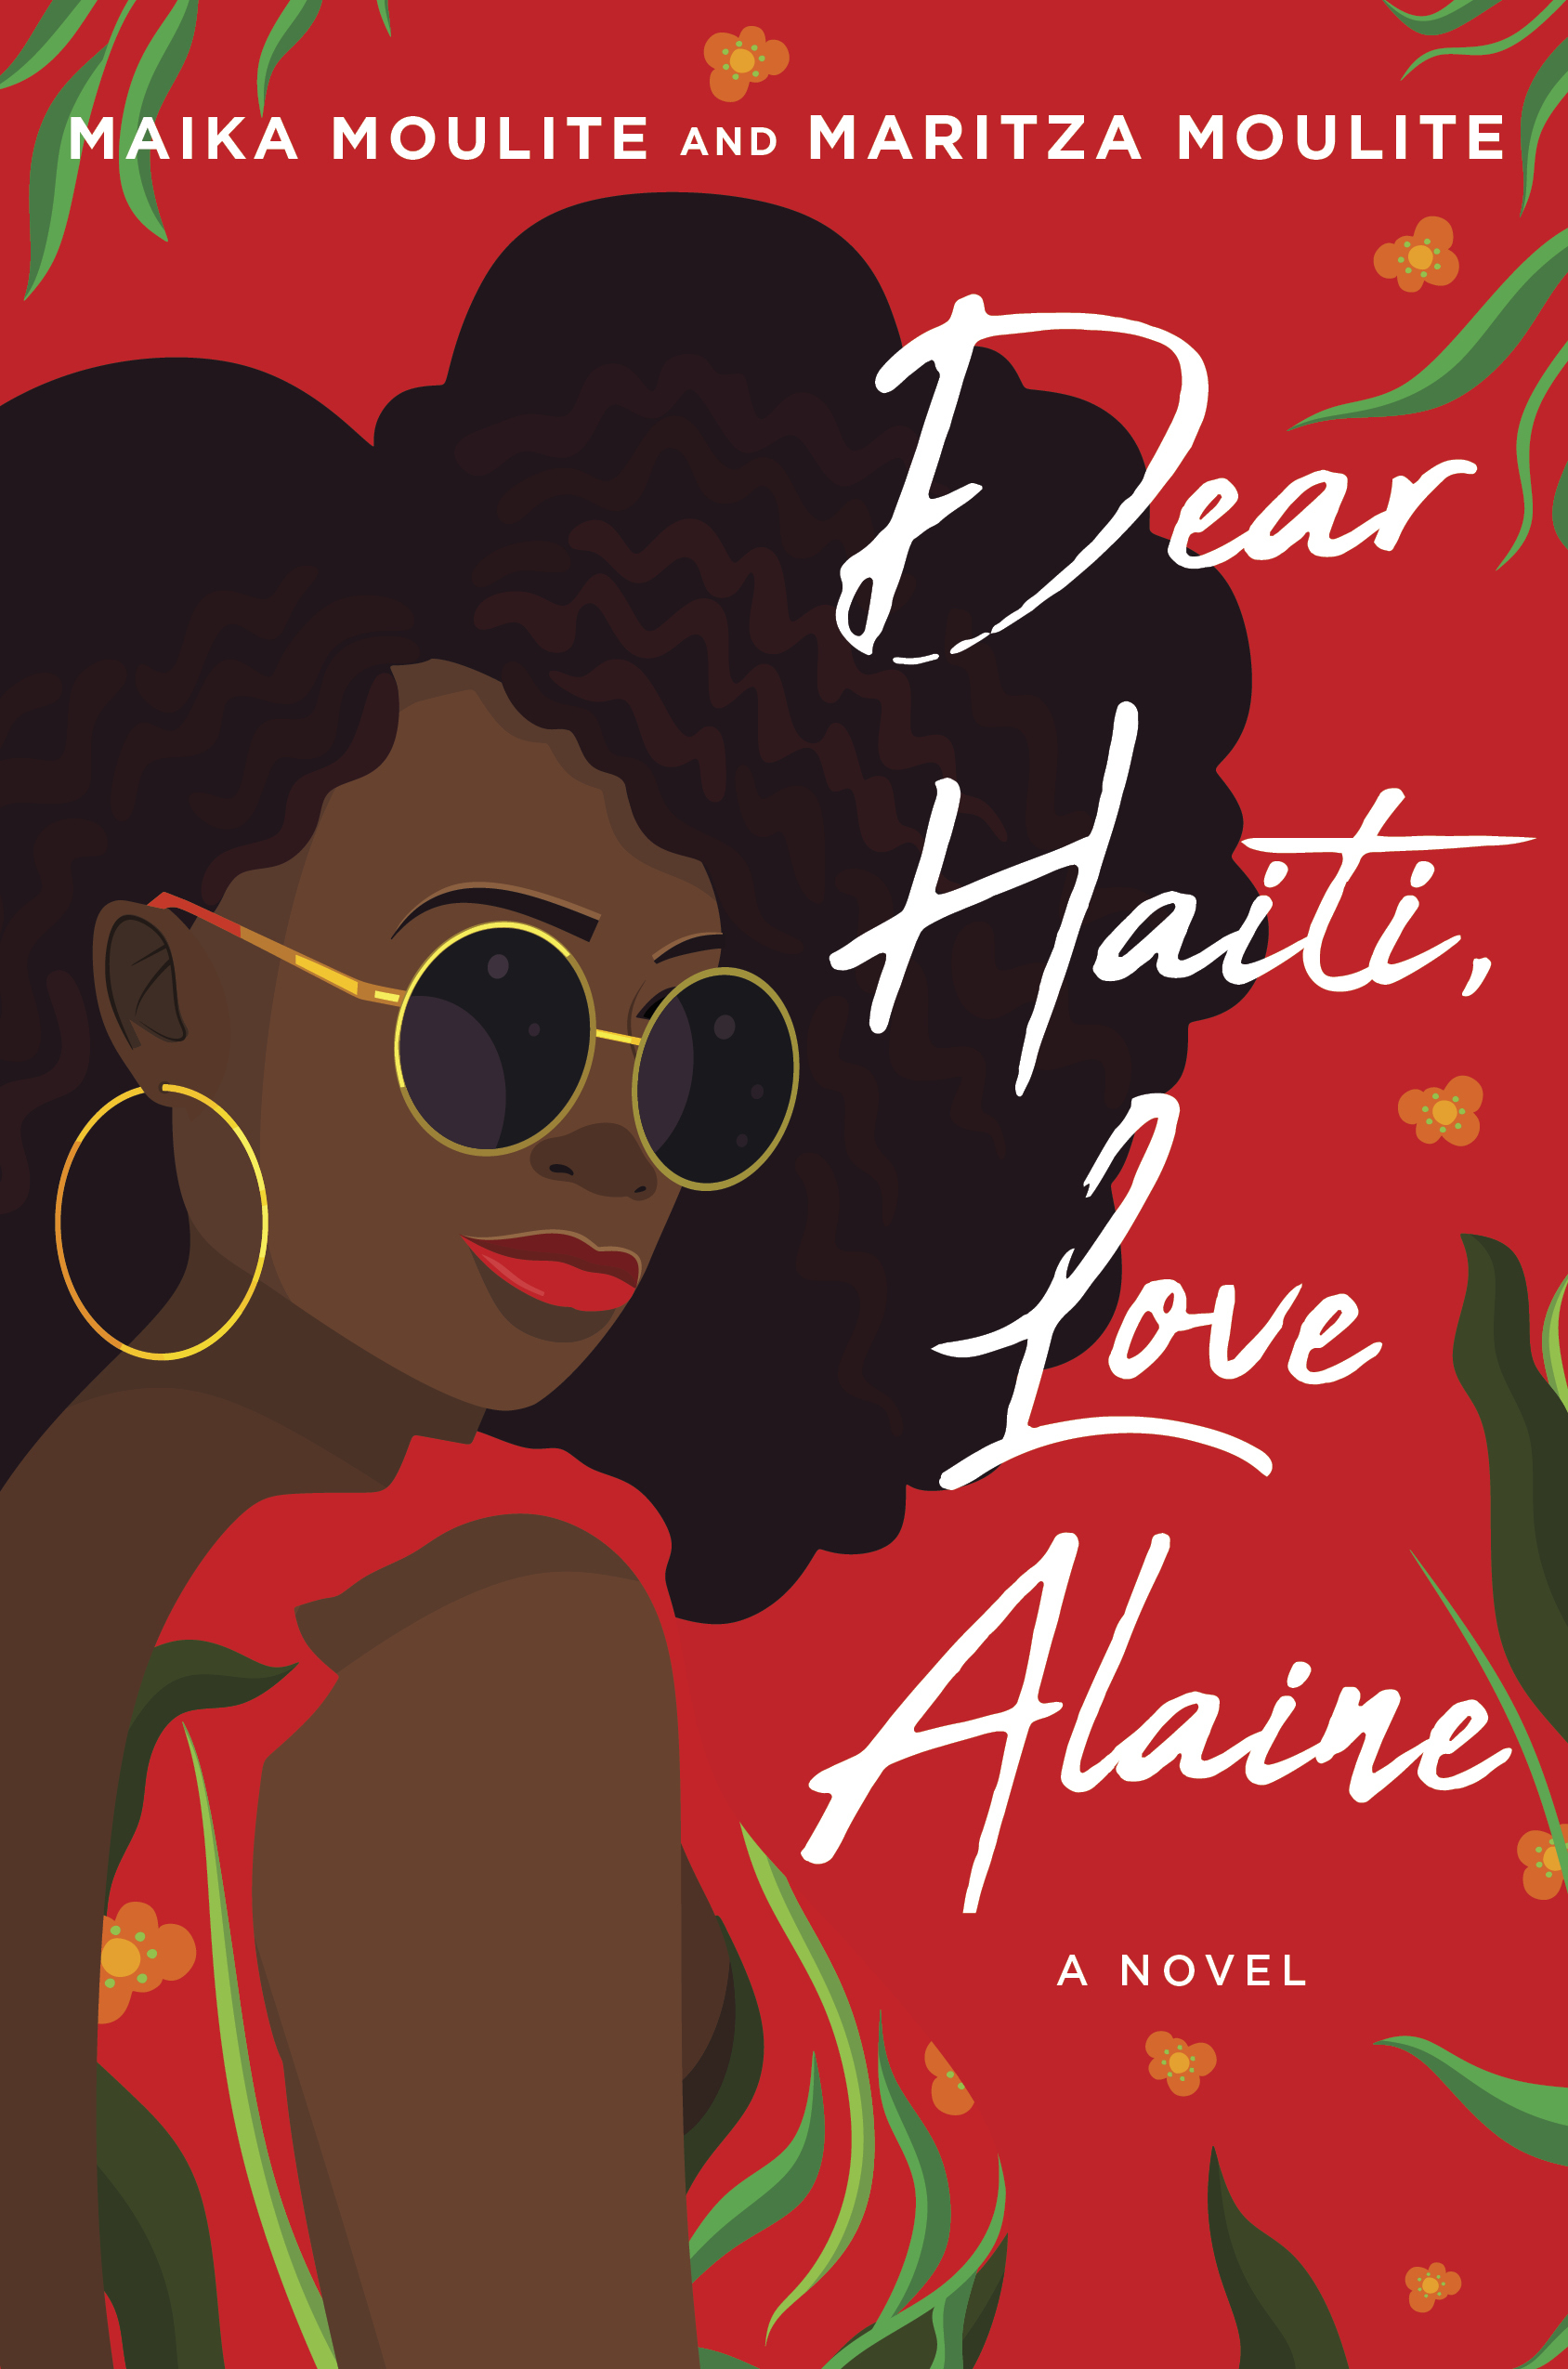 Dear Haiti, Love Alaine by Maika Moulite and Maritza Moulite